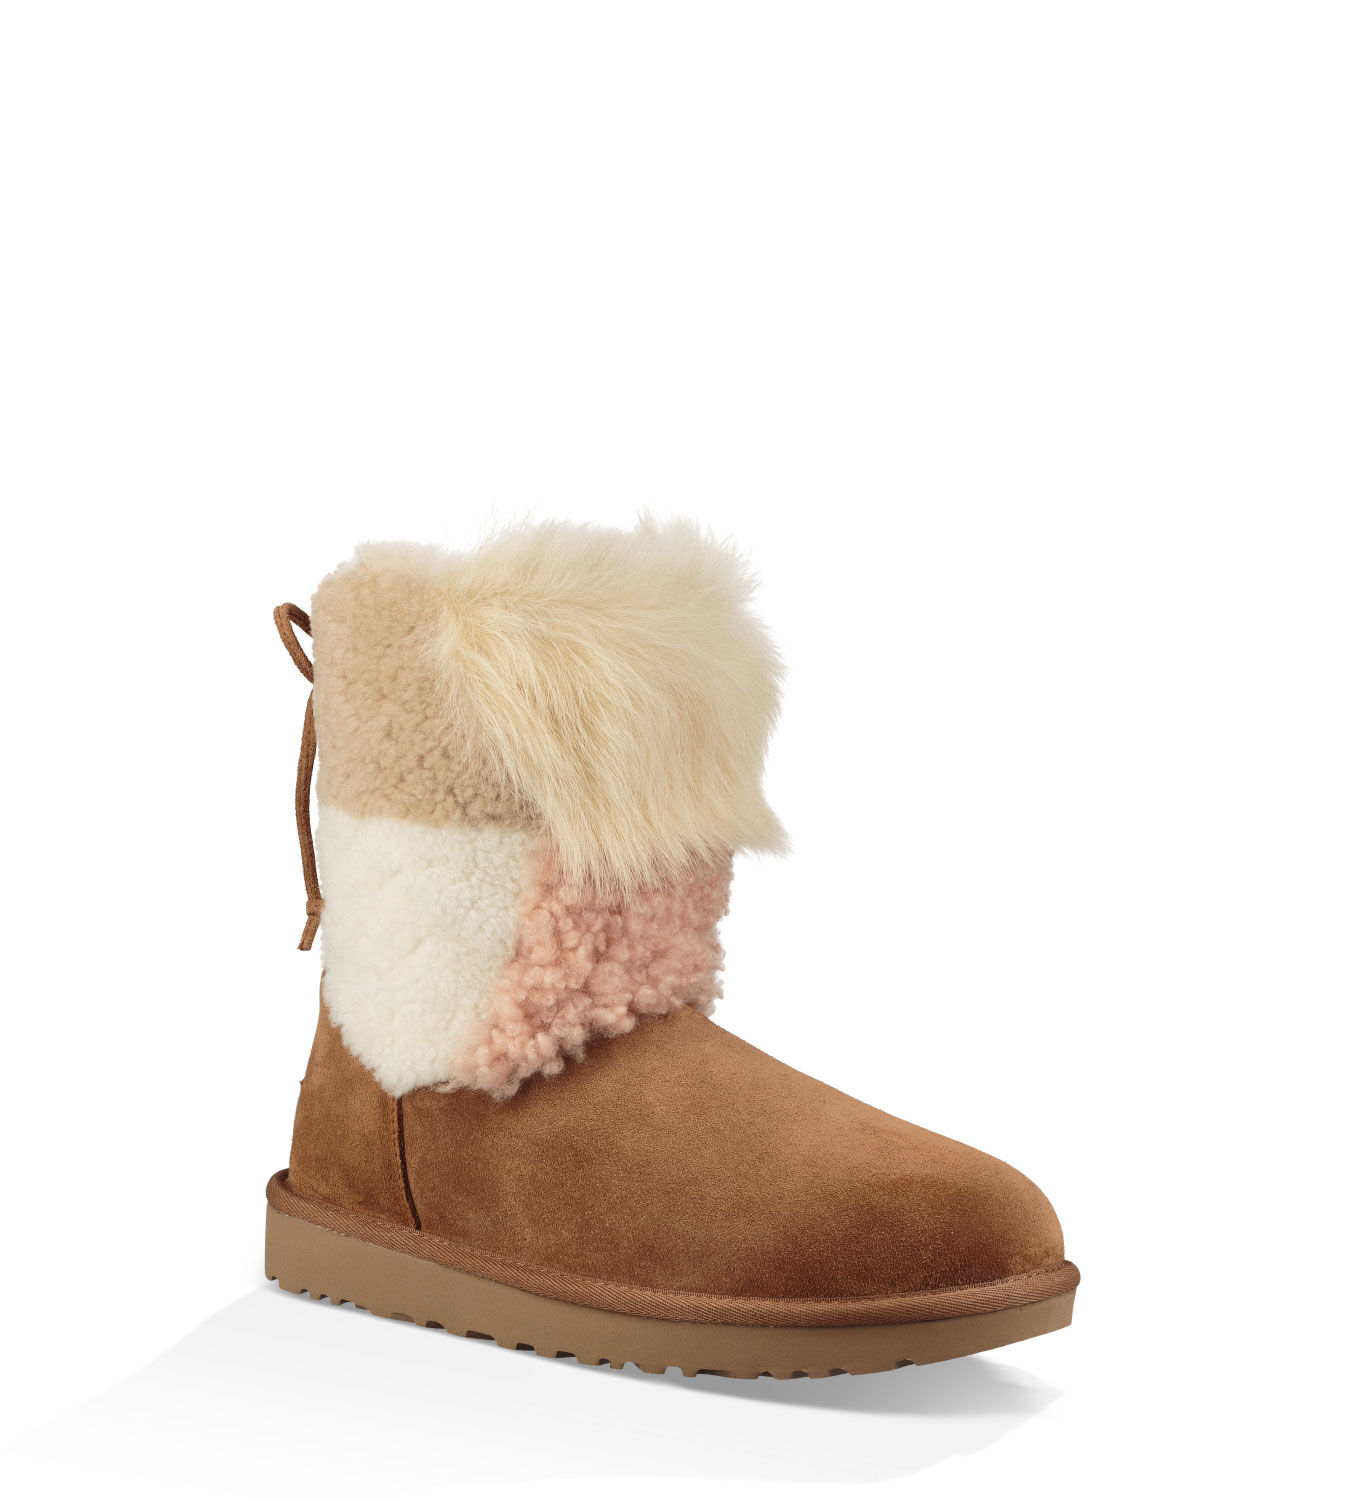 d7aadc3cd57 greece ugg boots with fur on outside a95e2 8b4d4